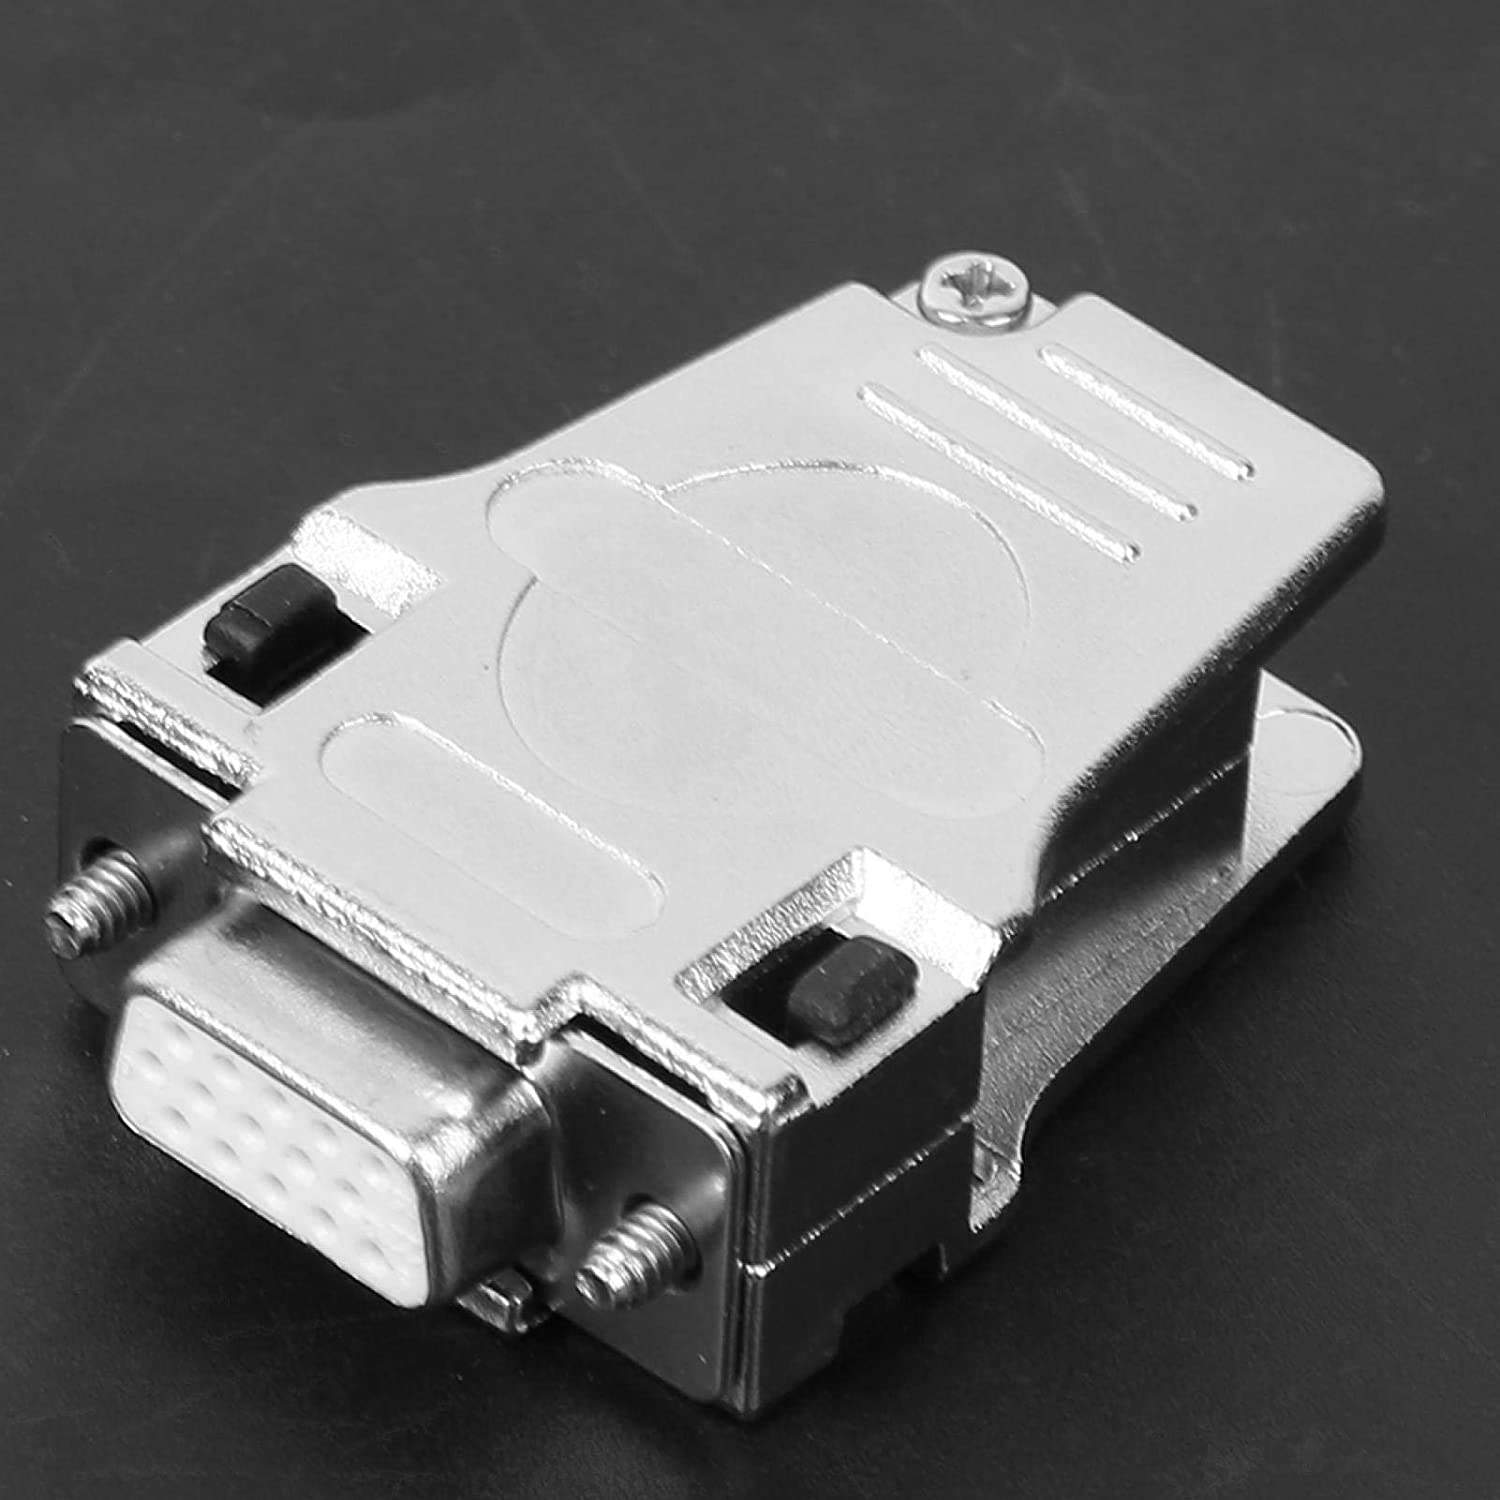 Uxsiya Adapter Insulator High Frequency Max 82% OFF Fire Our shop OFFers the best service Resistanc Connector